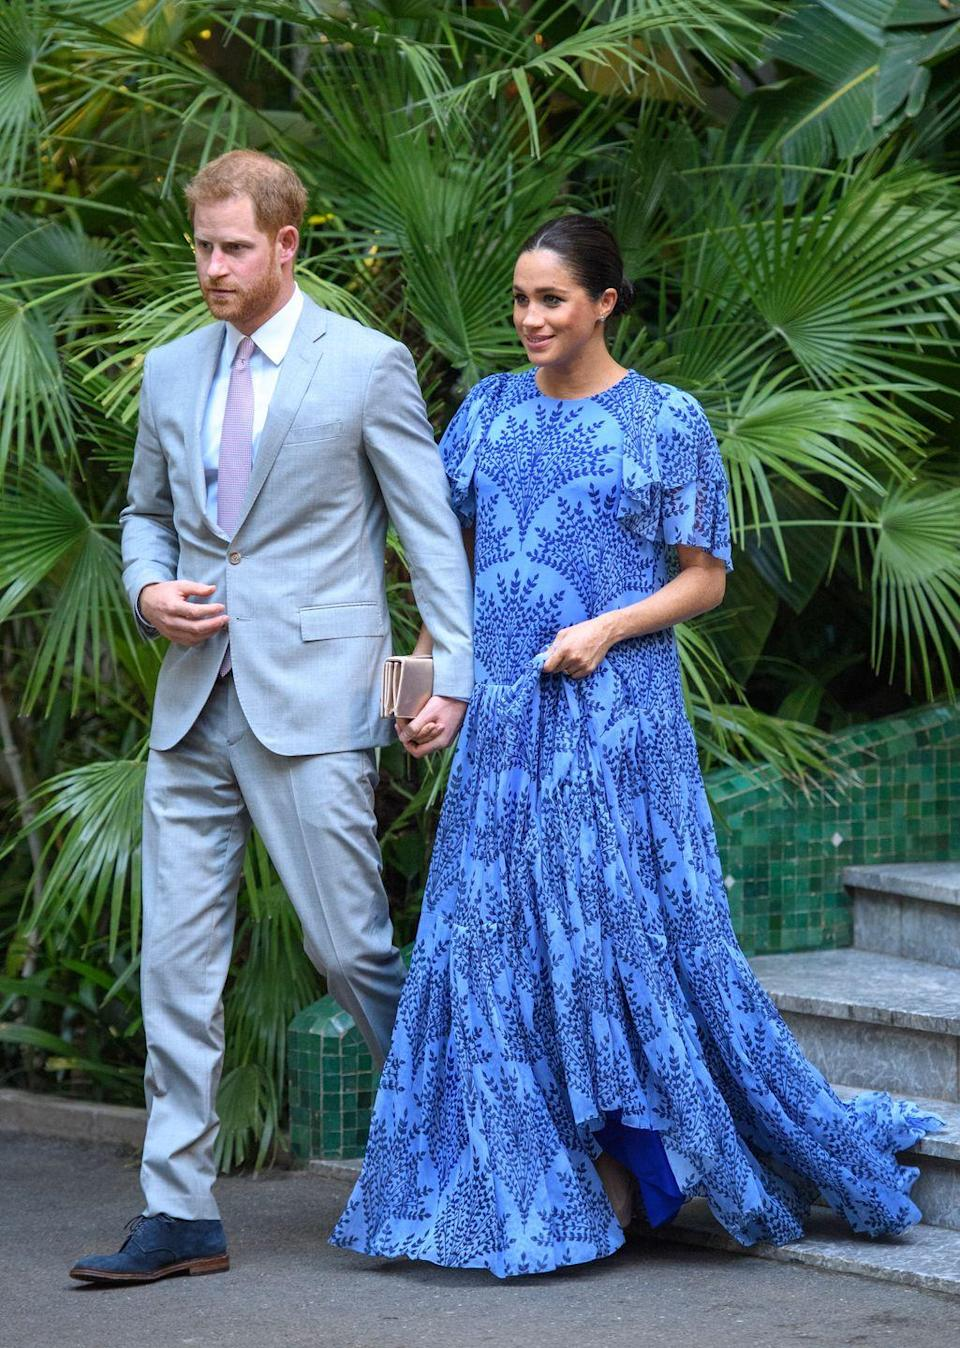 <p>Before concluding their royal tour of Morocco, the Duke and Duchess of Sussex attended a private audience with King Mohammed VI of Morocco at his residence. Meghan Markle looked elegant in a blue patterned evening gown by Carolina Herrera. </p>